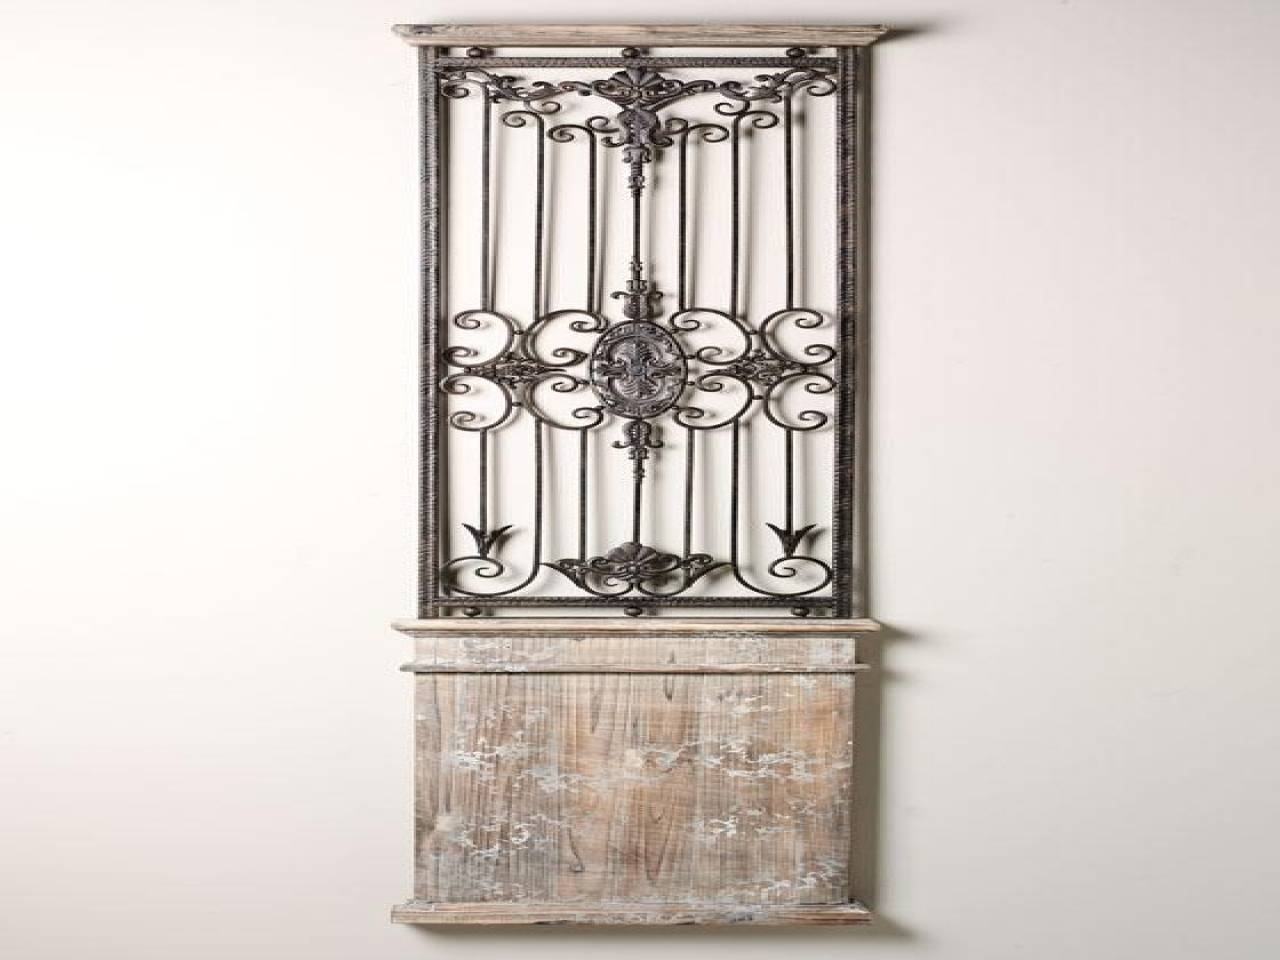 Large Mirrors For Wall, Decorative Metal Gates Decorative Iron In Most Current Metal Gate Wall Art (View 8 of 32)